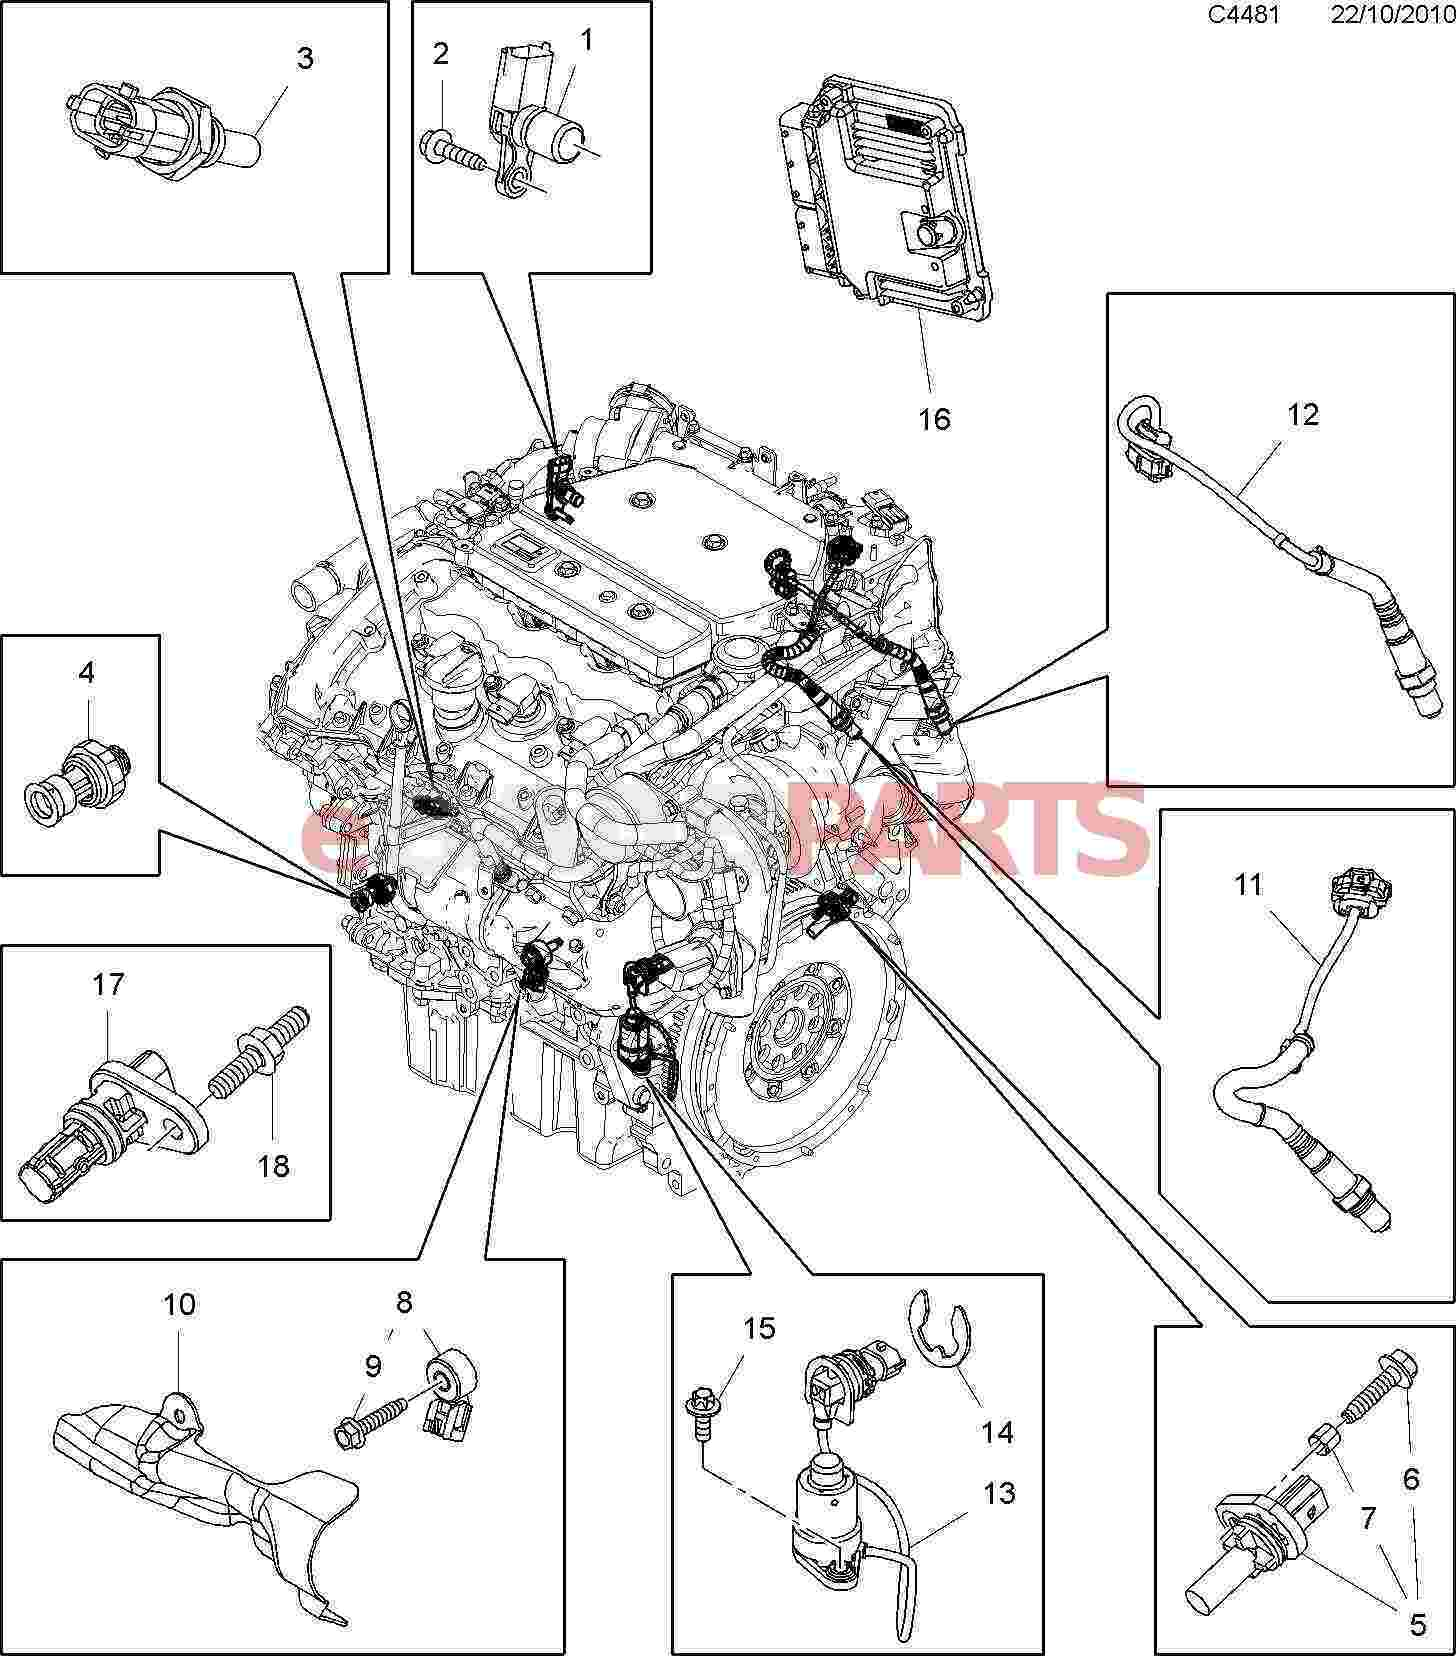 6i18x Hyundai Elantra 03 Hyundai Elantra Fault Code P0420 together with 2000 Toyota Tundra Bank 2 Sensor 1 Location likewise 2777w Knock Sensor 2550 Toyota 4runner V8 furthermore 2om7s Locate O2 Sensor Circuit Bank Sensor 2 likewise P 0900c15280060e44. on toyota knock sensor location 2005